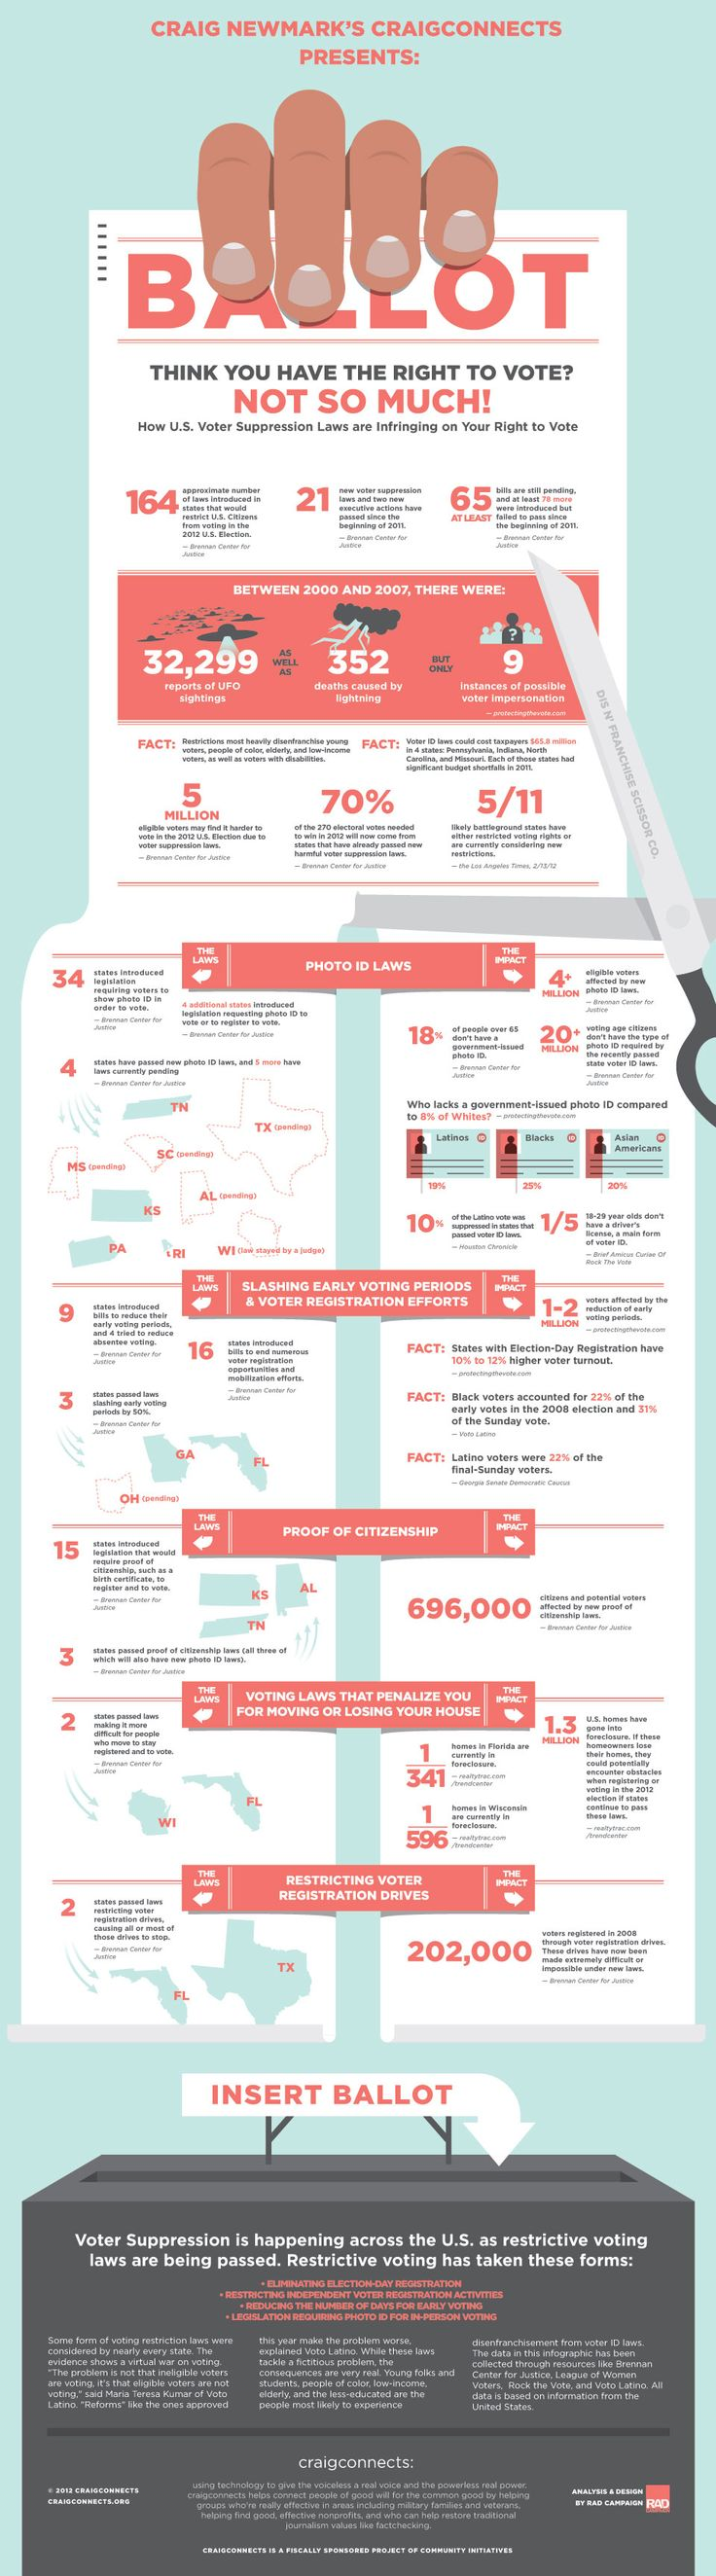 best ideas about importance of voting founder of craigslist craig newmark created infographic detailing restrictive voting laws in the us